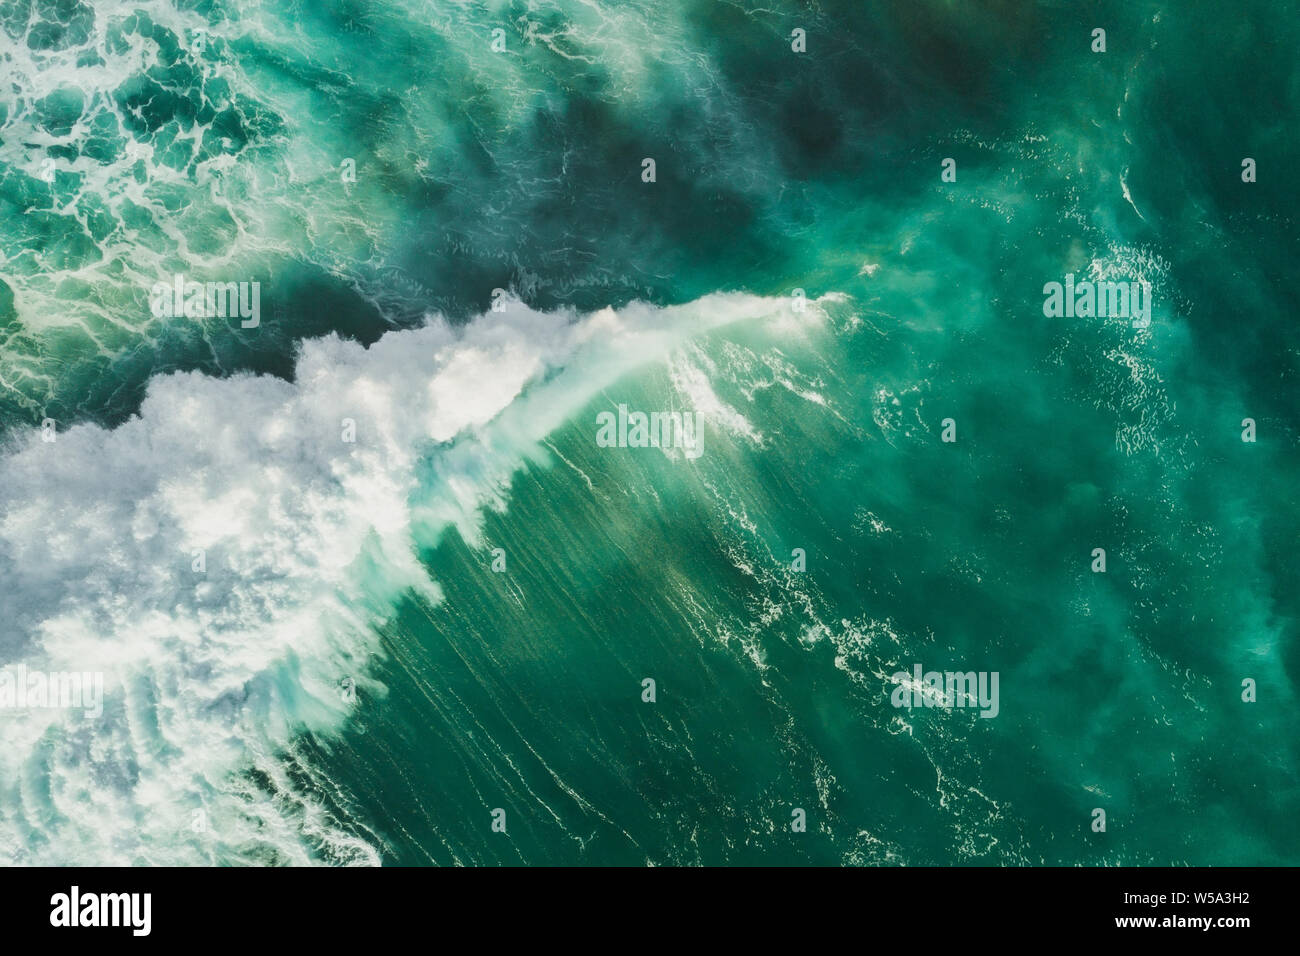 Aerial wave background. Drone shot directly from above, green turquoise color, huge waves. Empty space Stock Photo